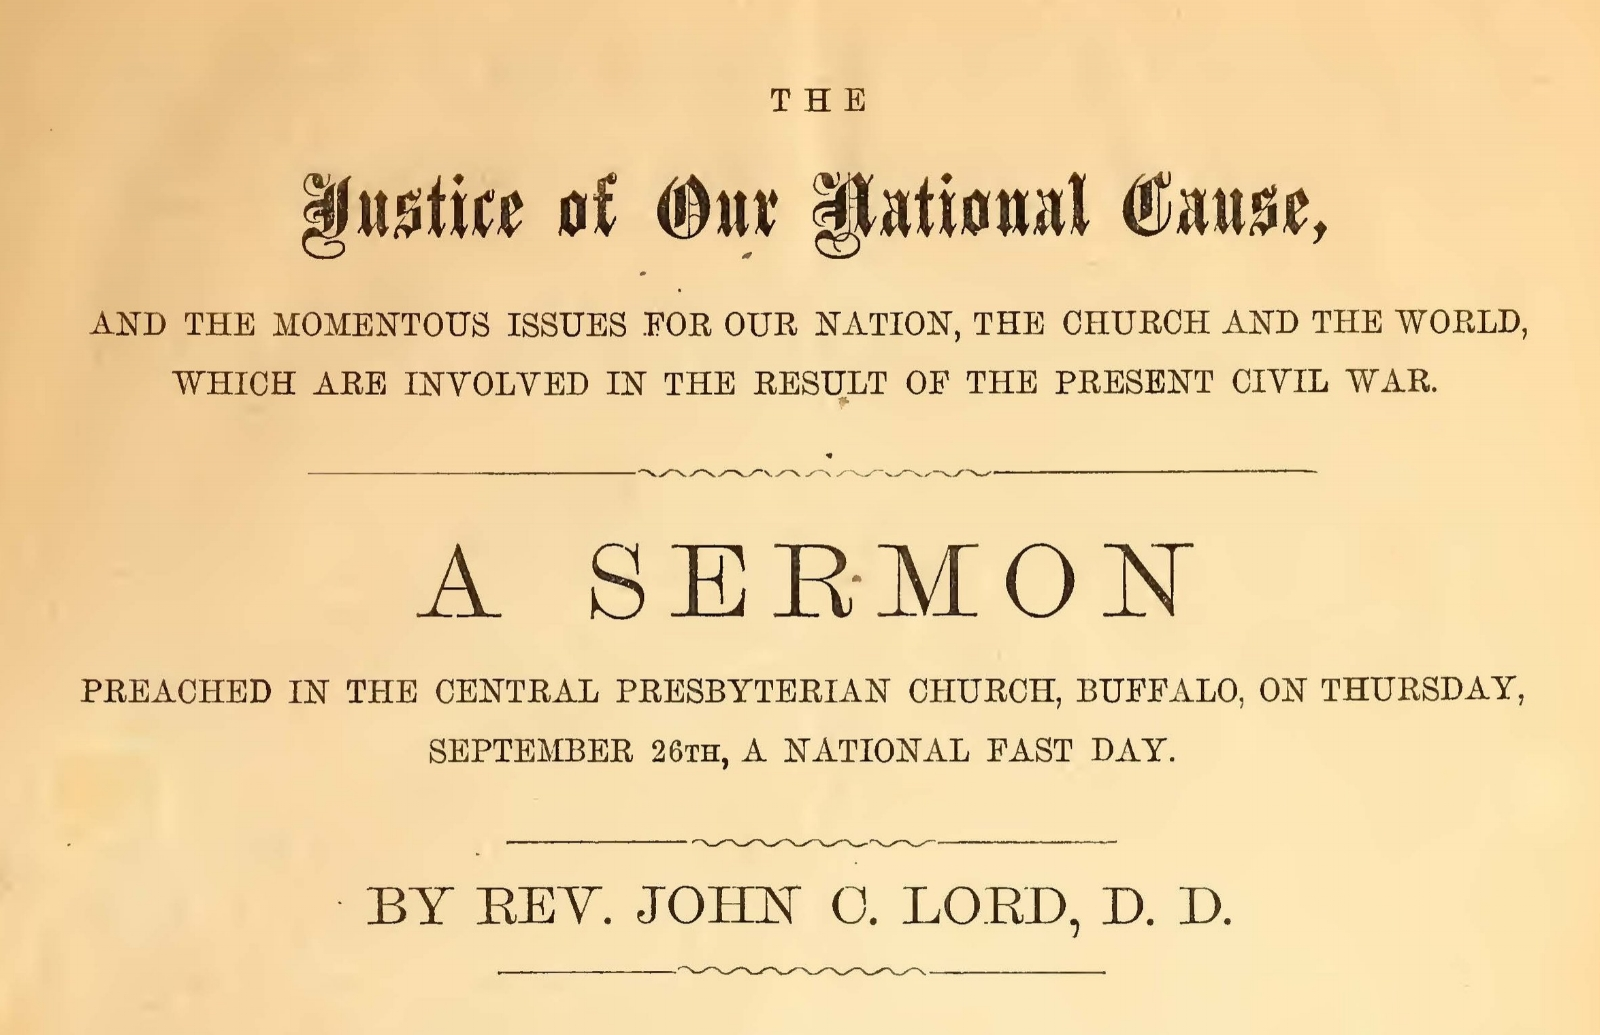 Lord, John Chase, The Justice of Our National Cause Title Page.jpg